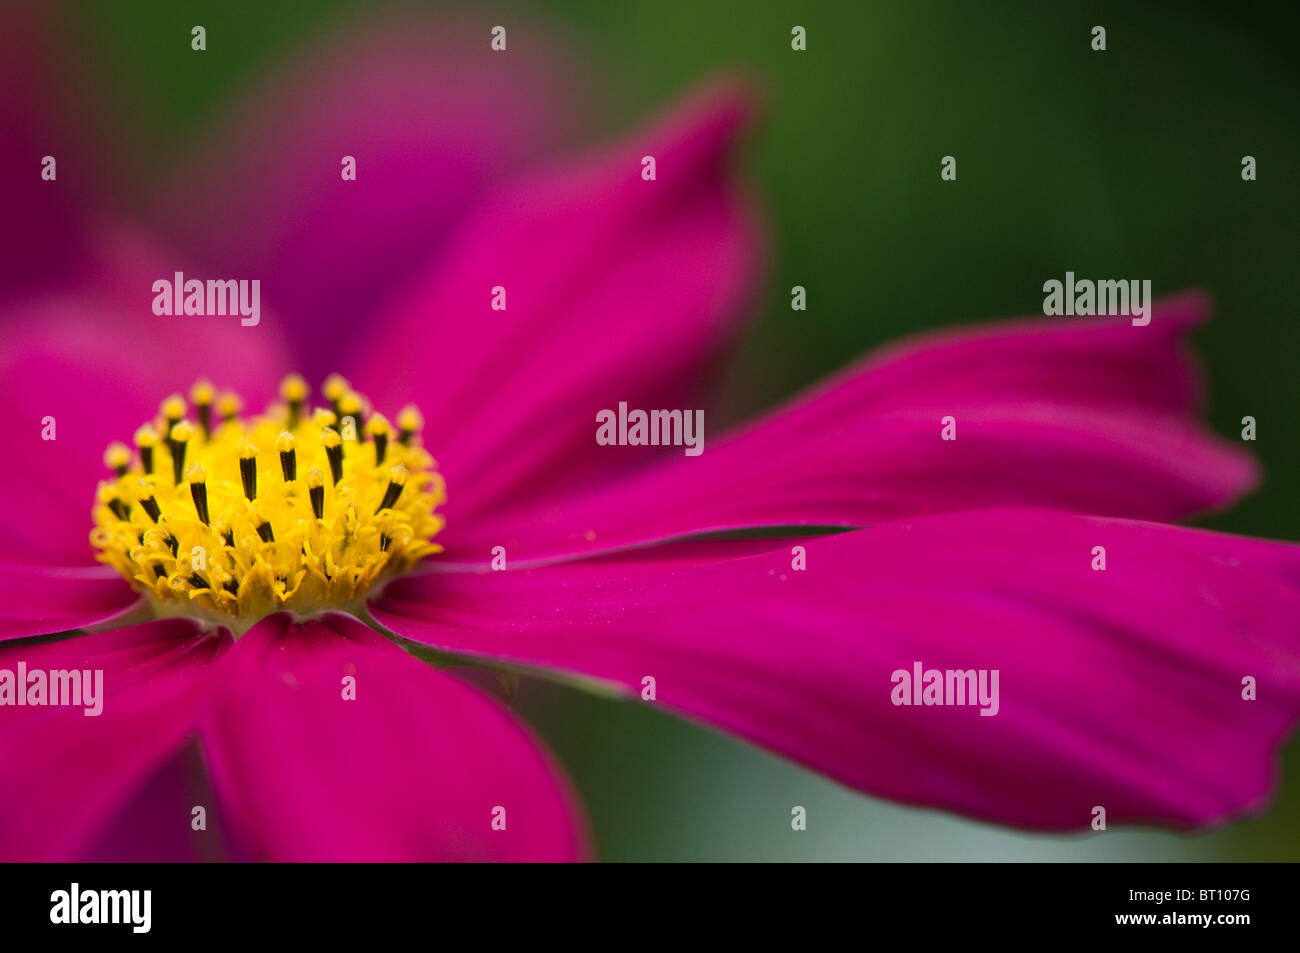 Close-up image of a single Pink Cosmos Sonata Flower - Stock Image